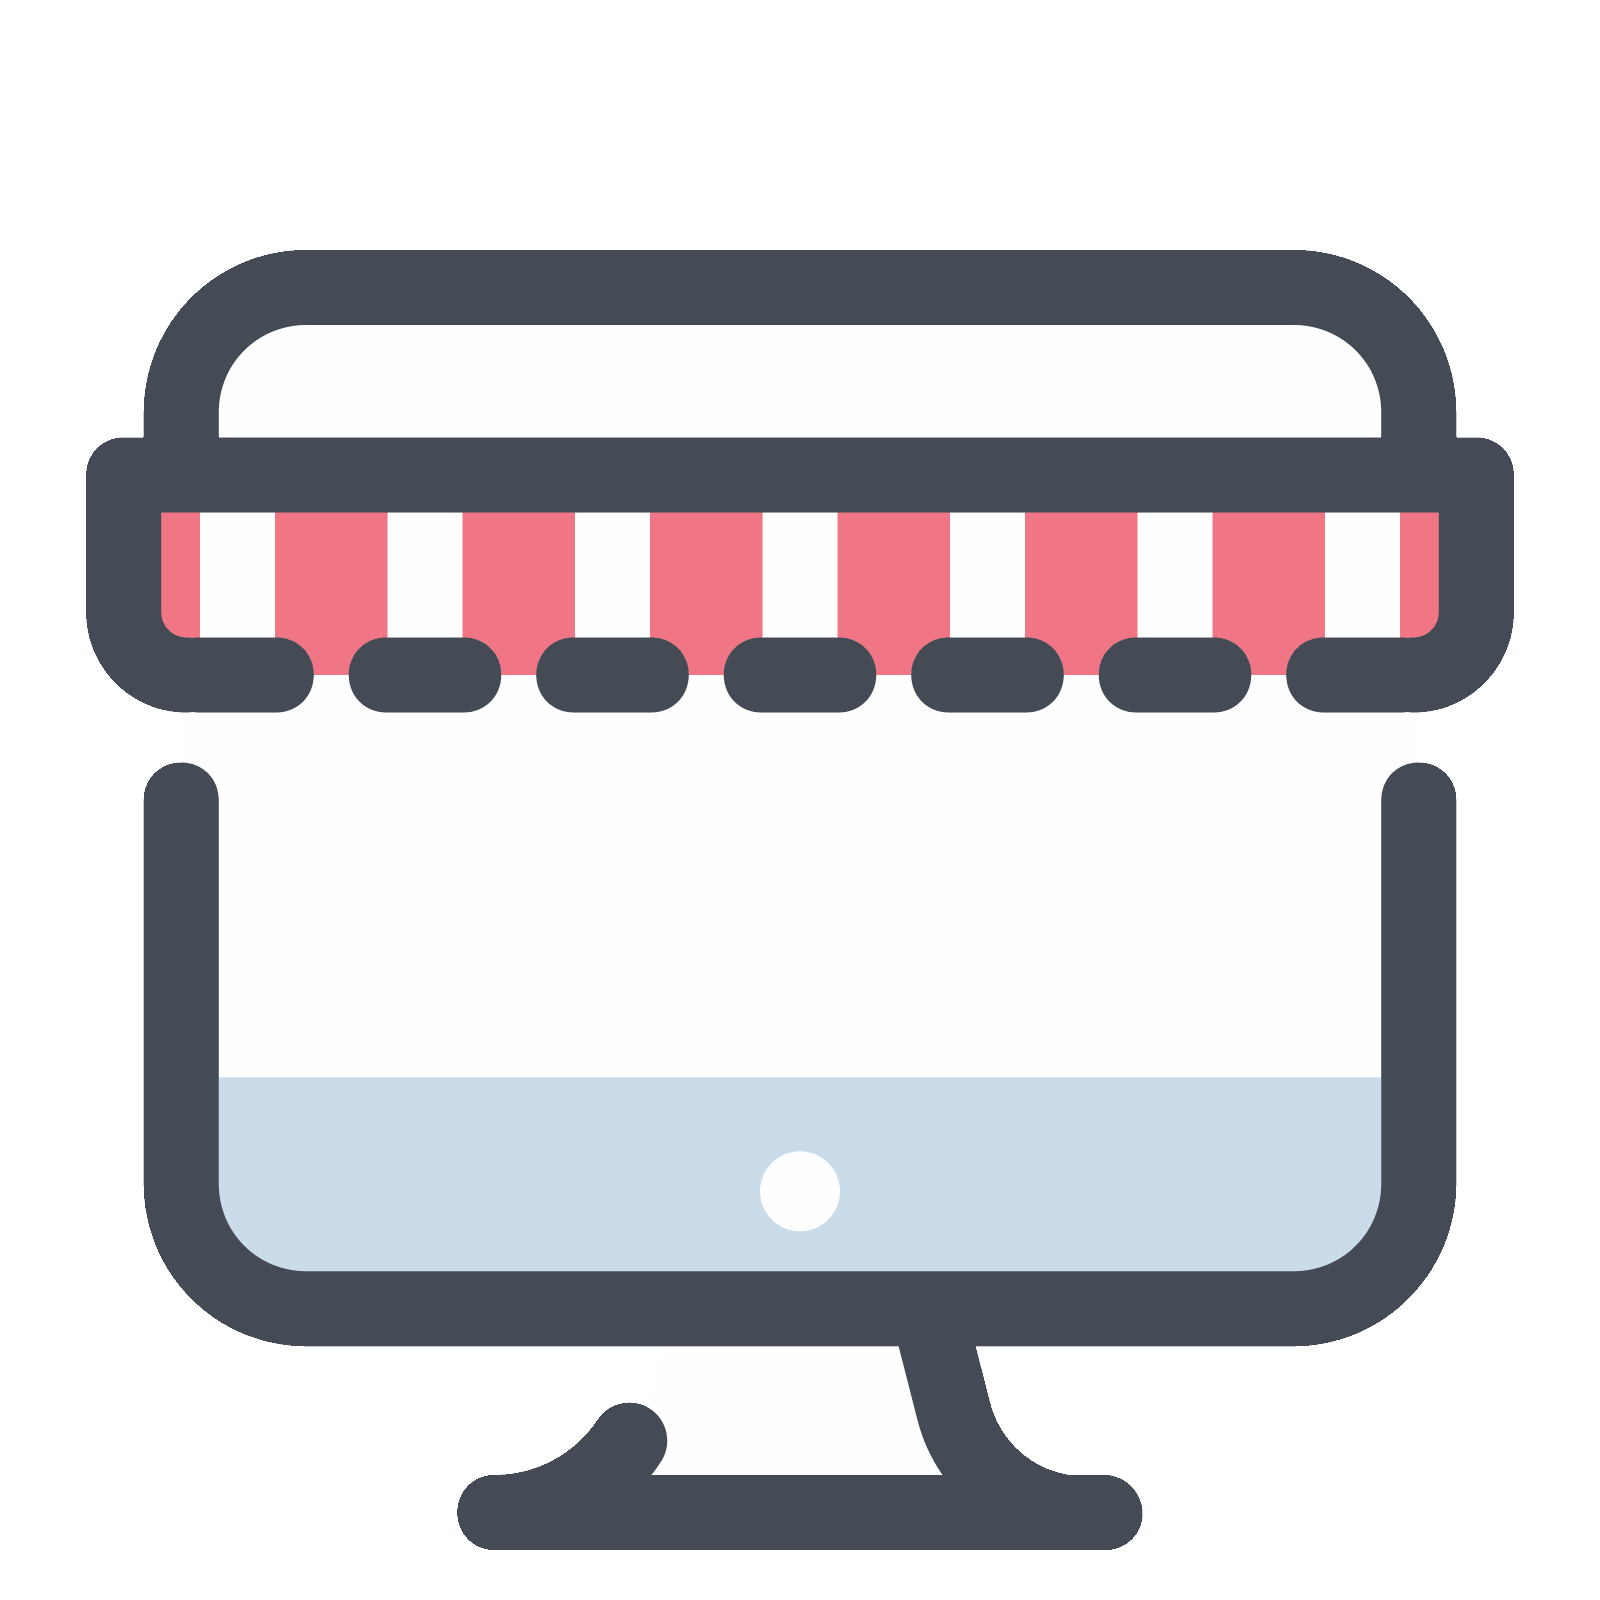 Shopping icon free download. Png to vector online